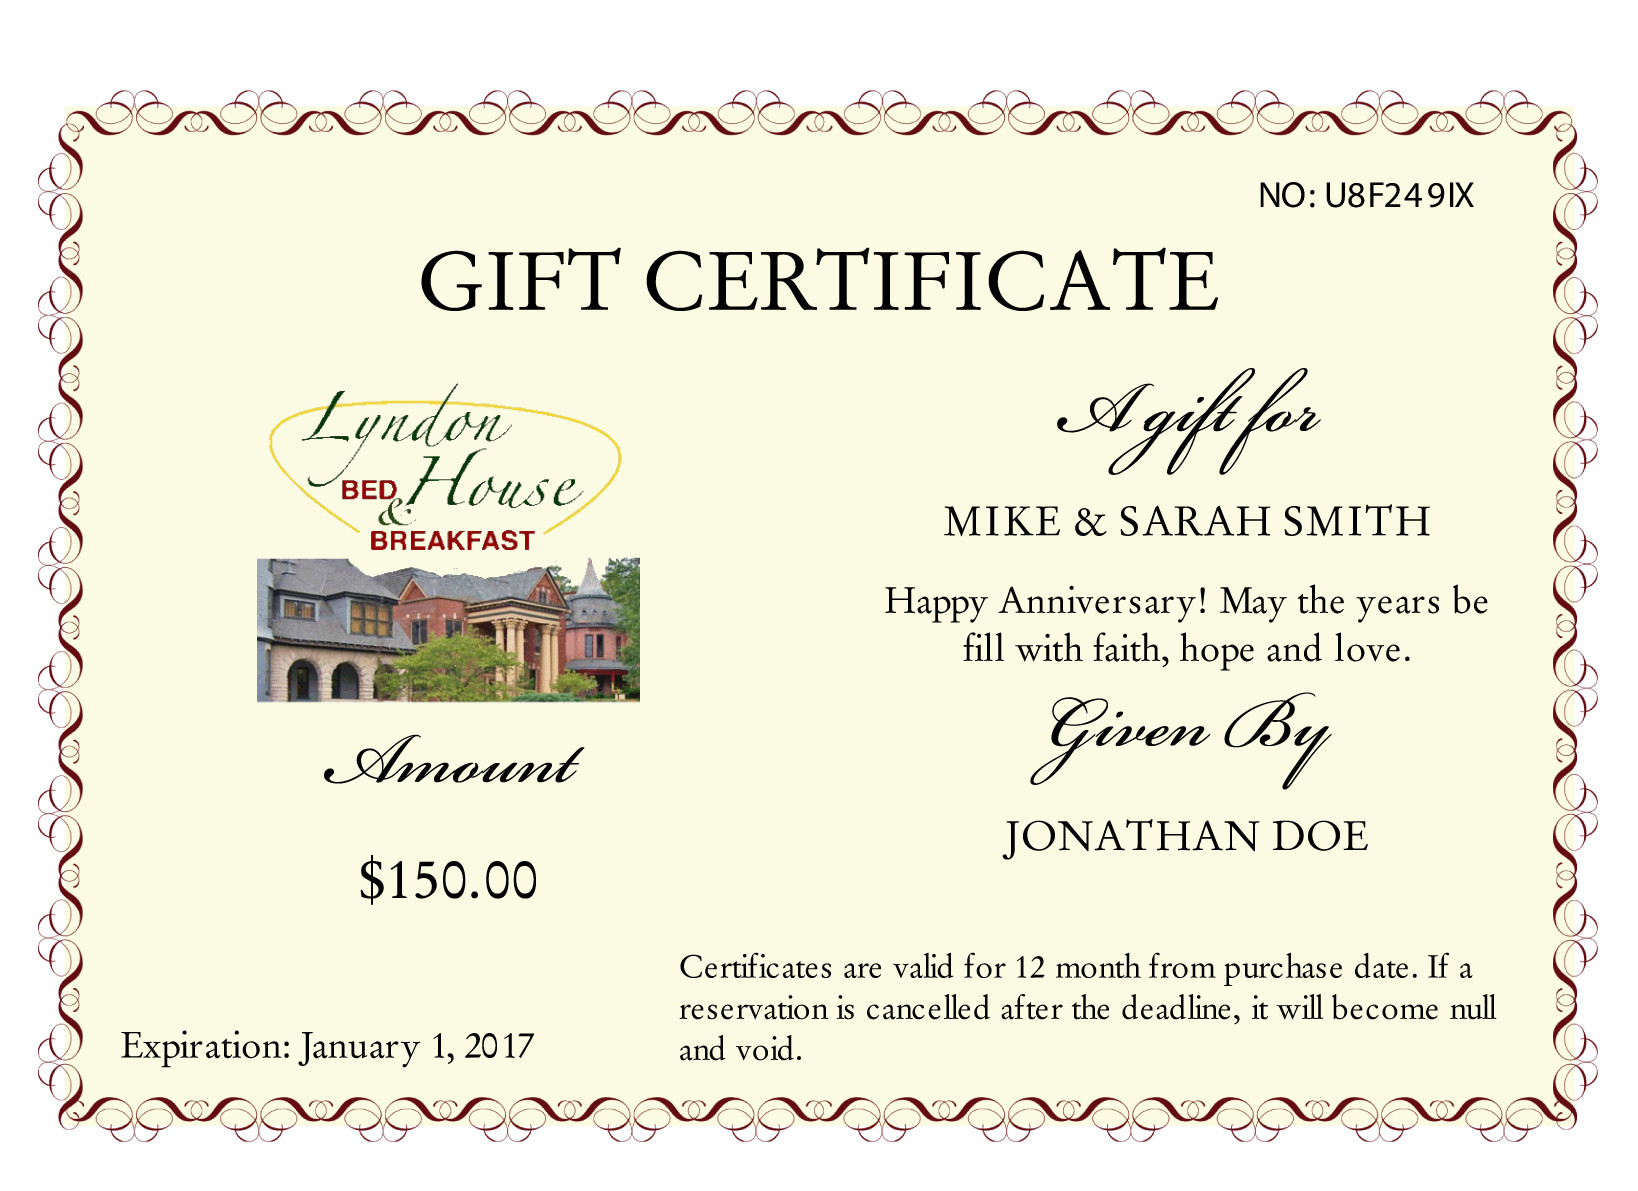 lyndon house gift certificates